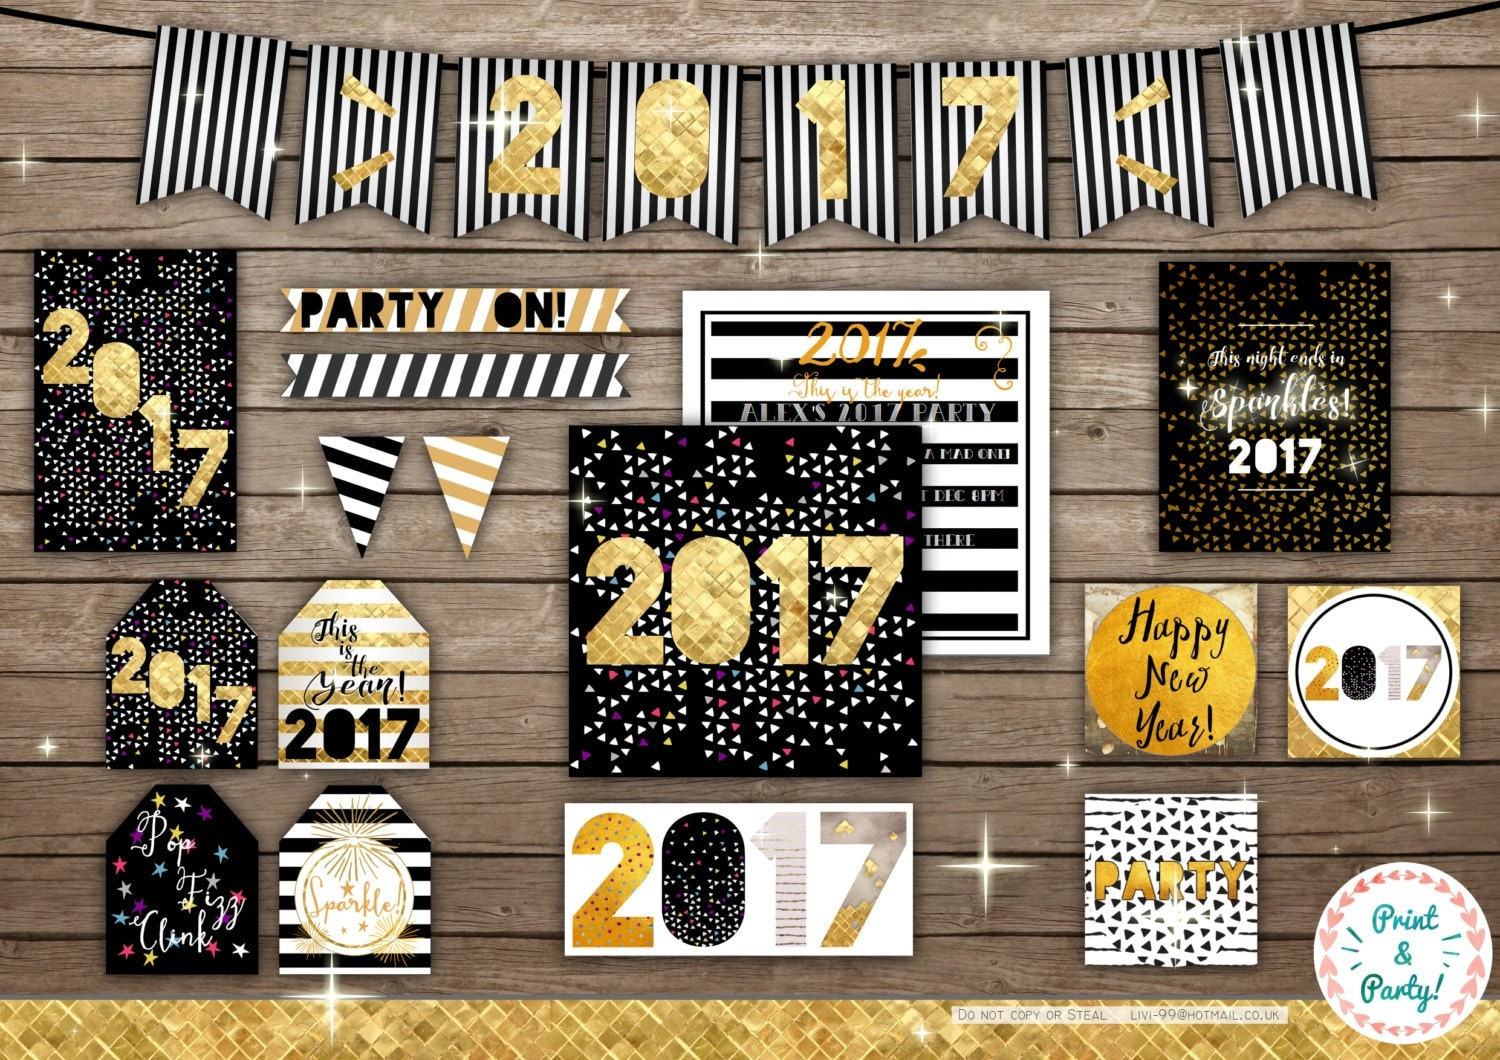 2017 New Years Party Decorations Printable Home Decor